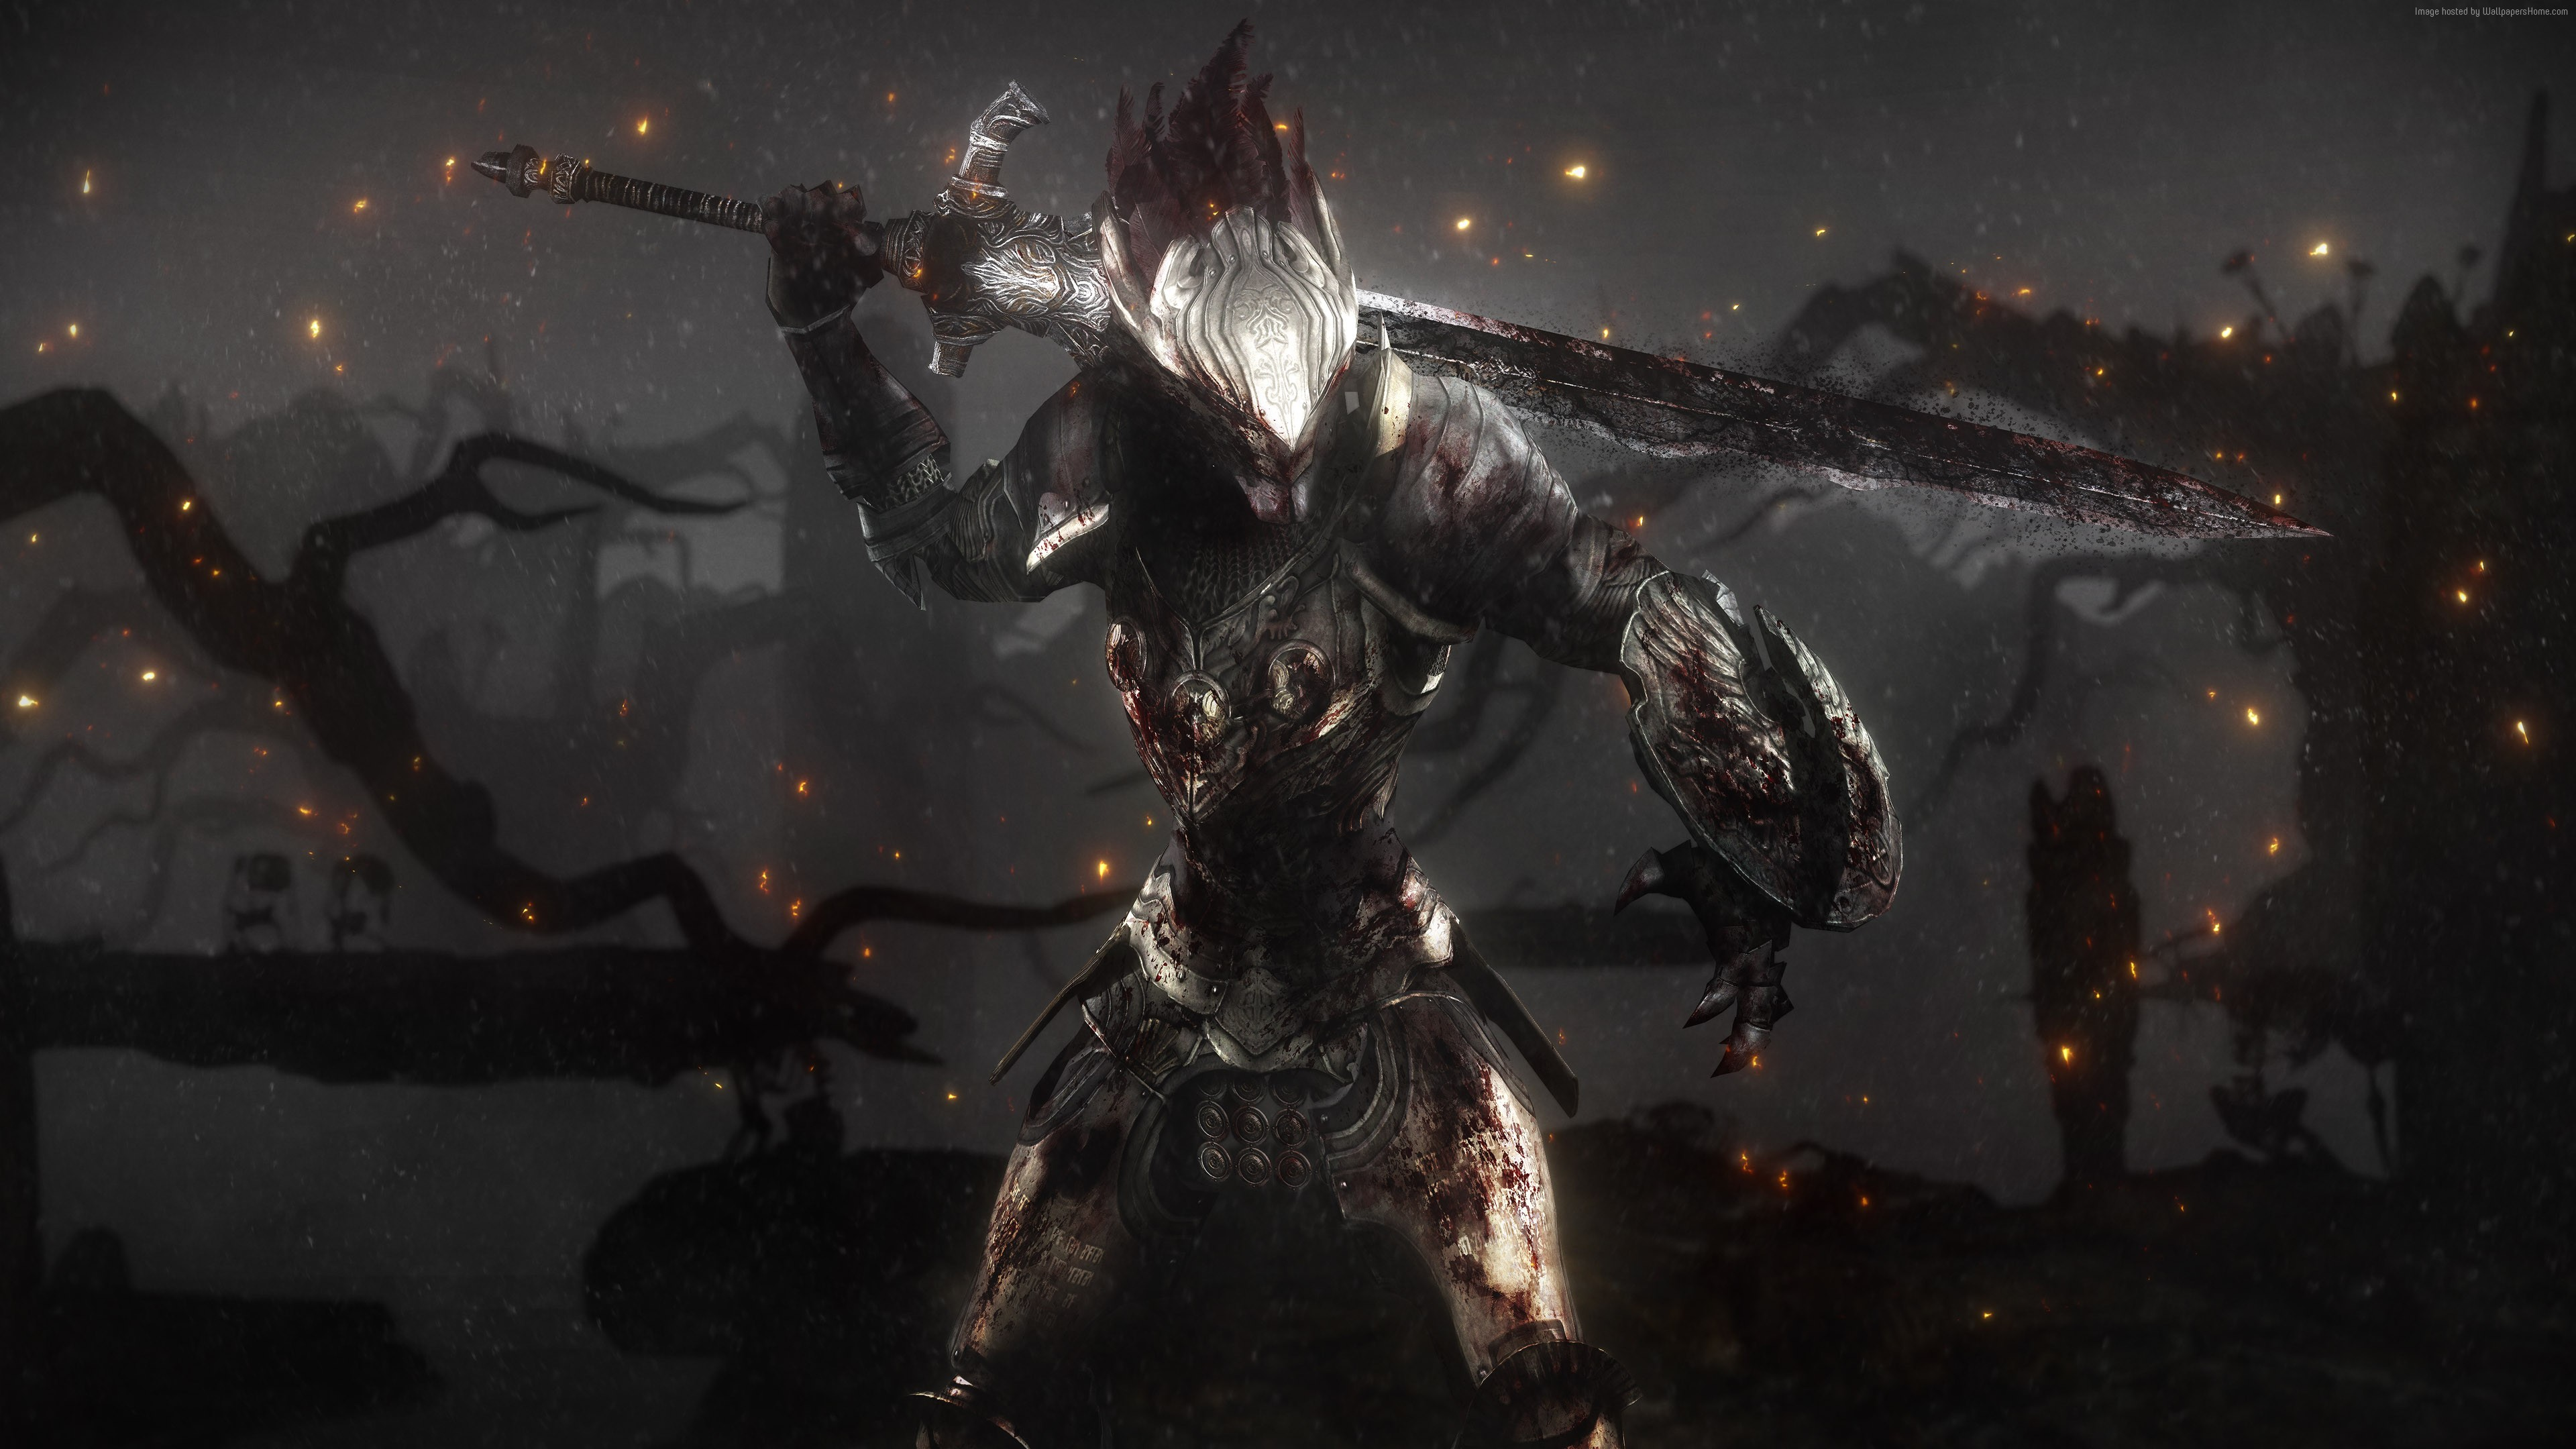 Dark Souls 3 Wallpapers High Resolution And Quality Download